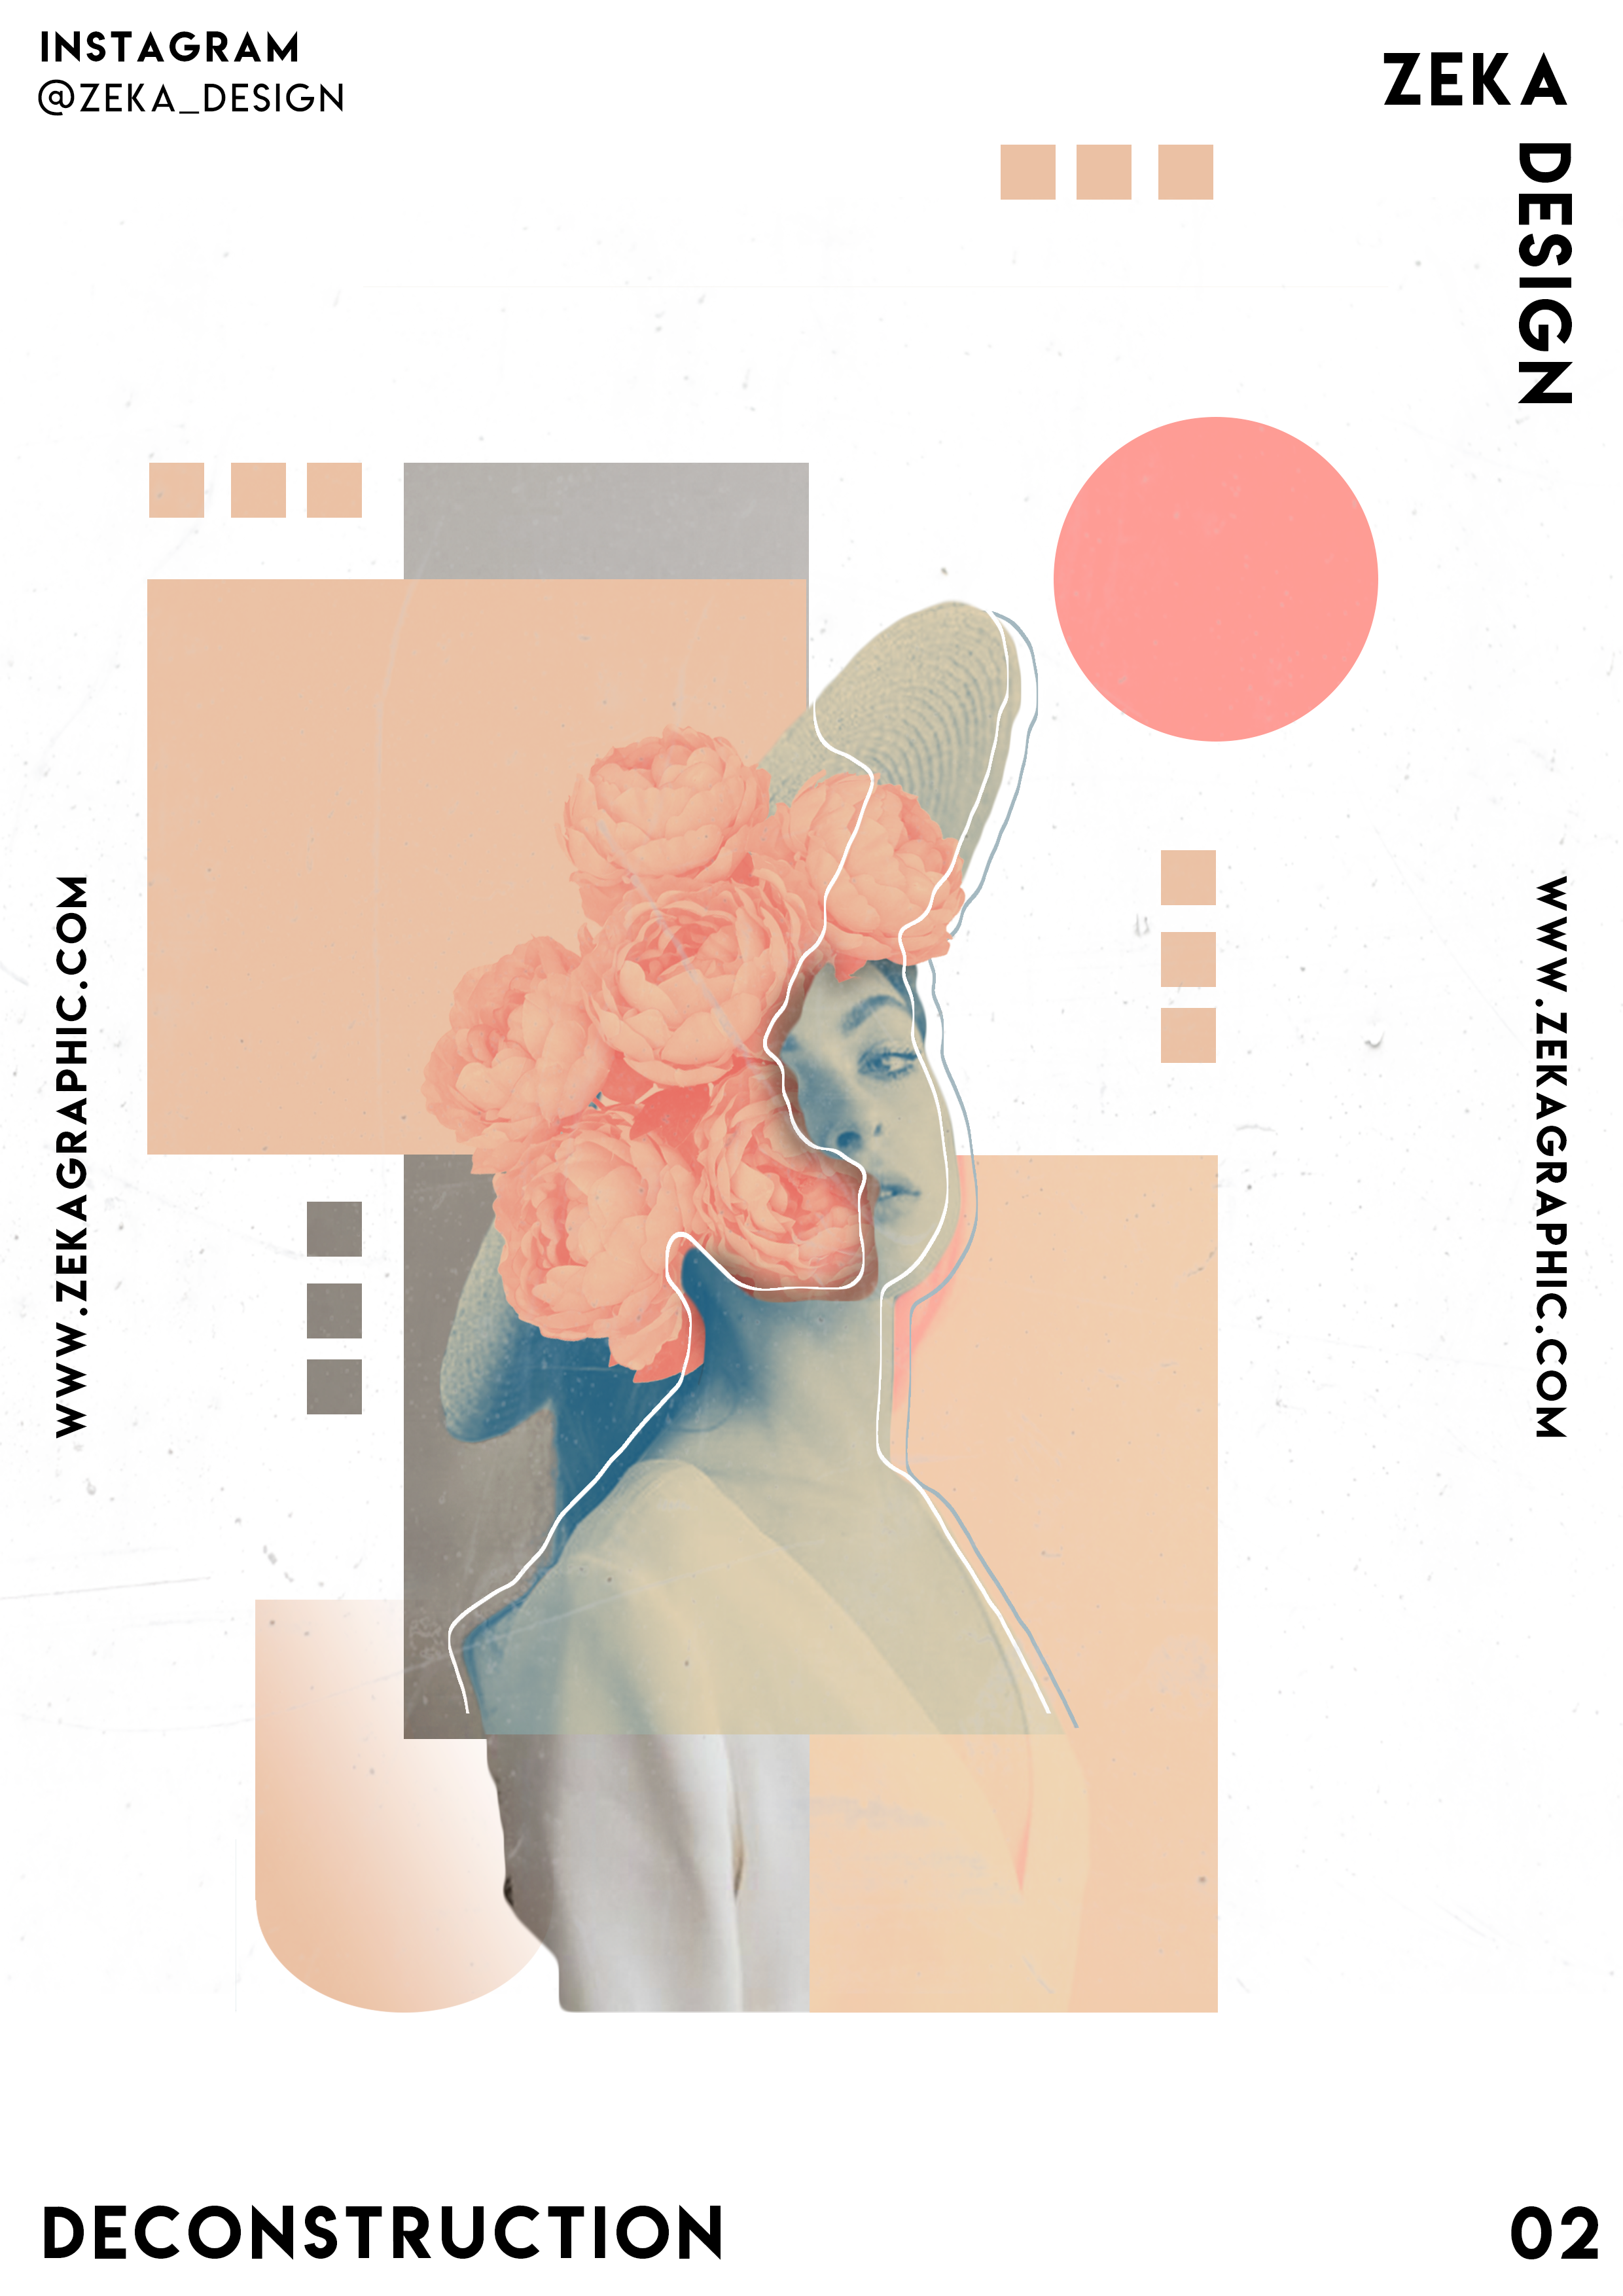 Deconstruction Poster Design 02 Collection Minimalist And Creative Art By Zeka Design In 2020 Vintage Graphic Design Collage Design Graphic Design Posters,Abstract Geometric Line Design